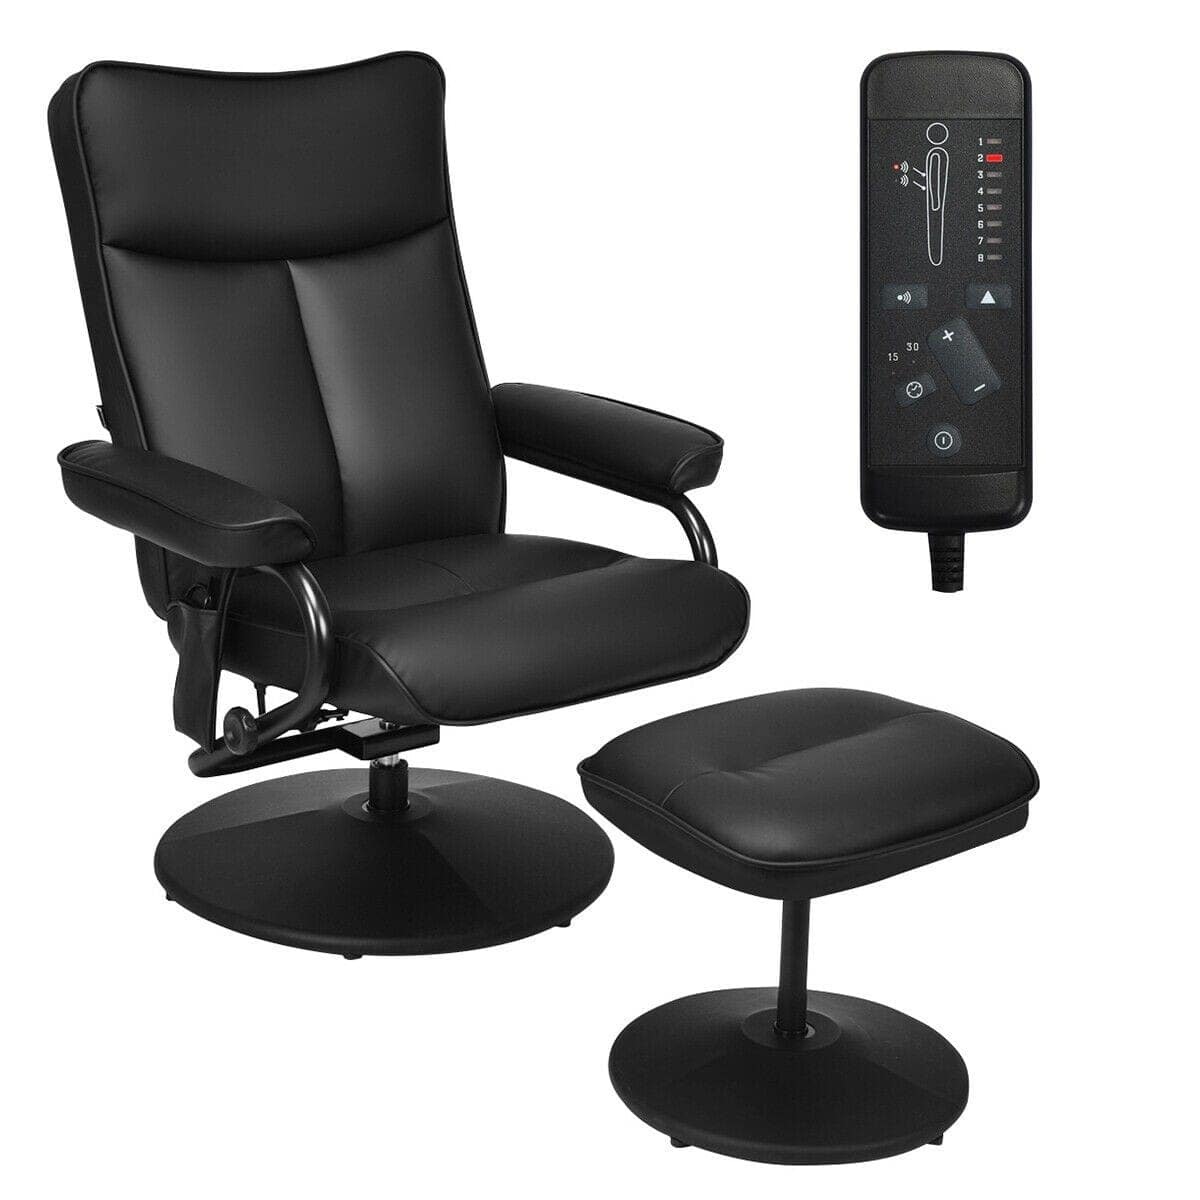 Costway Electric Massage Recliner Chair with Ottoman and Remote Control + $160.95 + FS